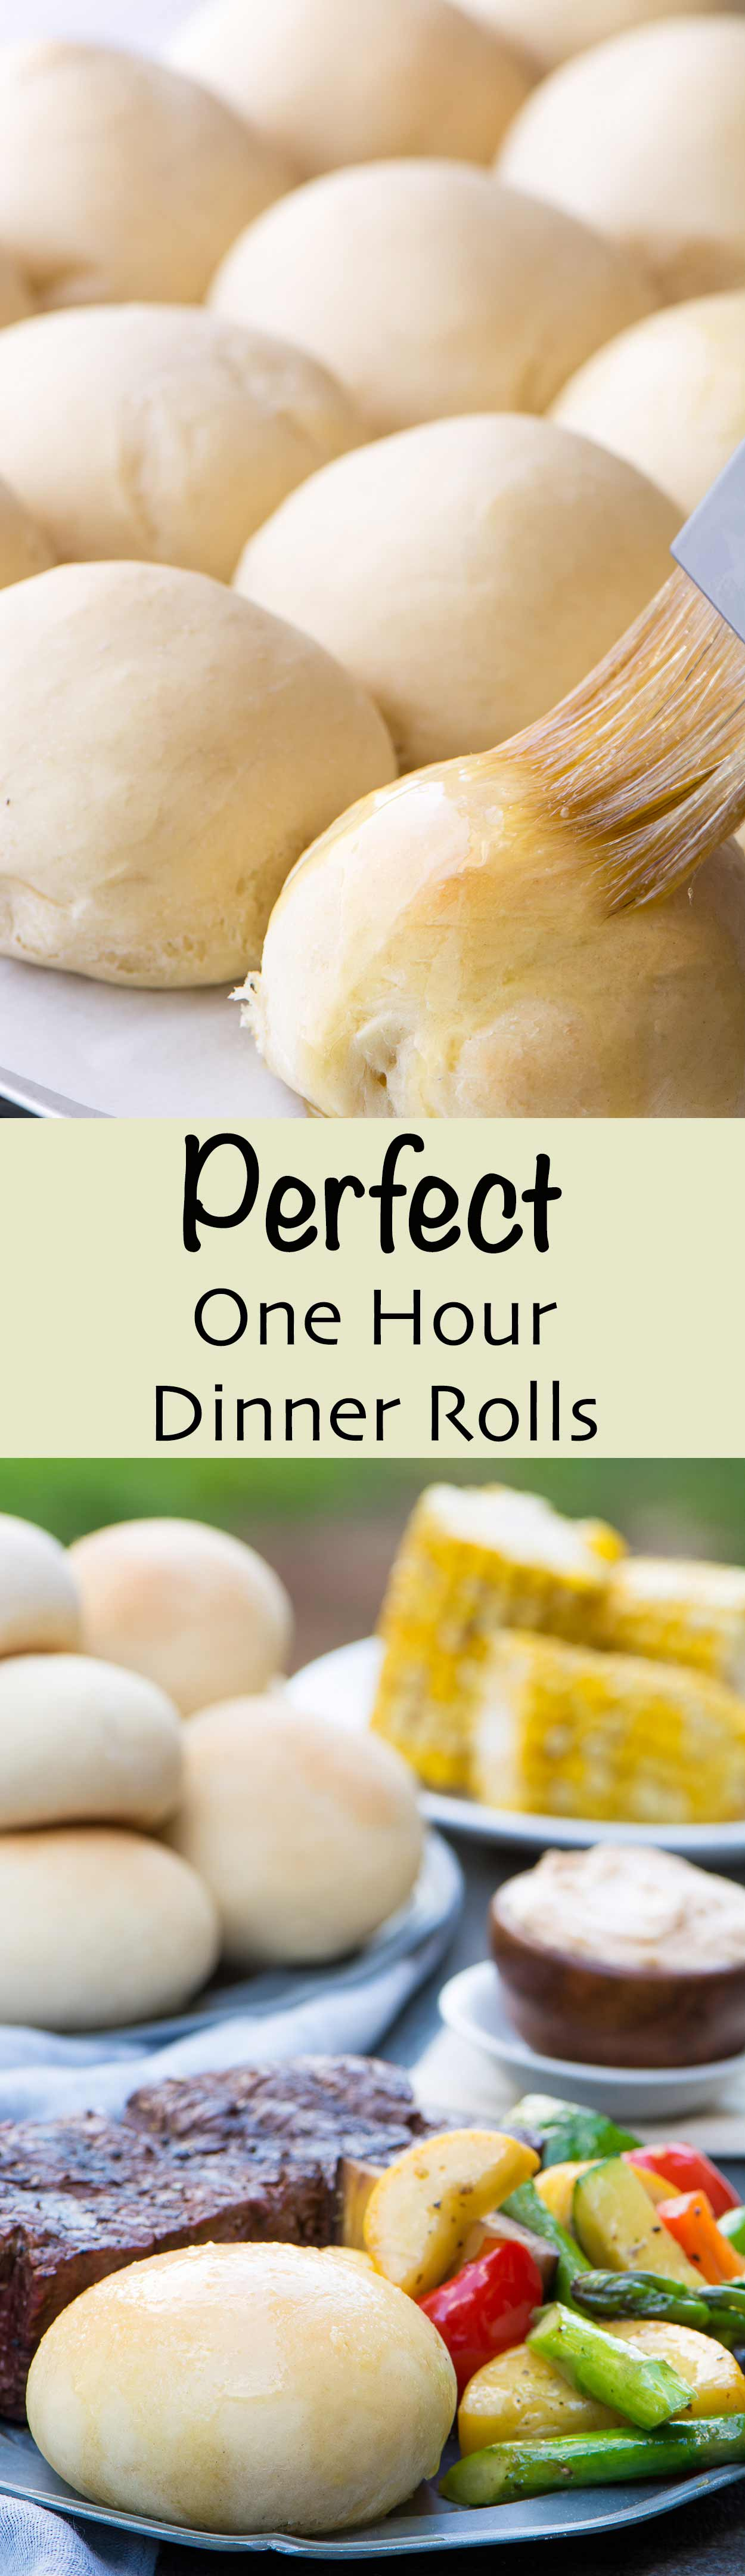 Perfect One Hour Dinner Rolls that are light and flaky. You can't have just one!